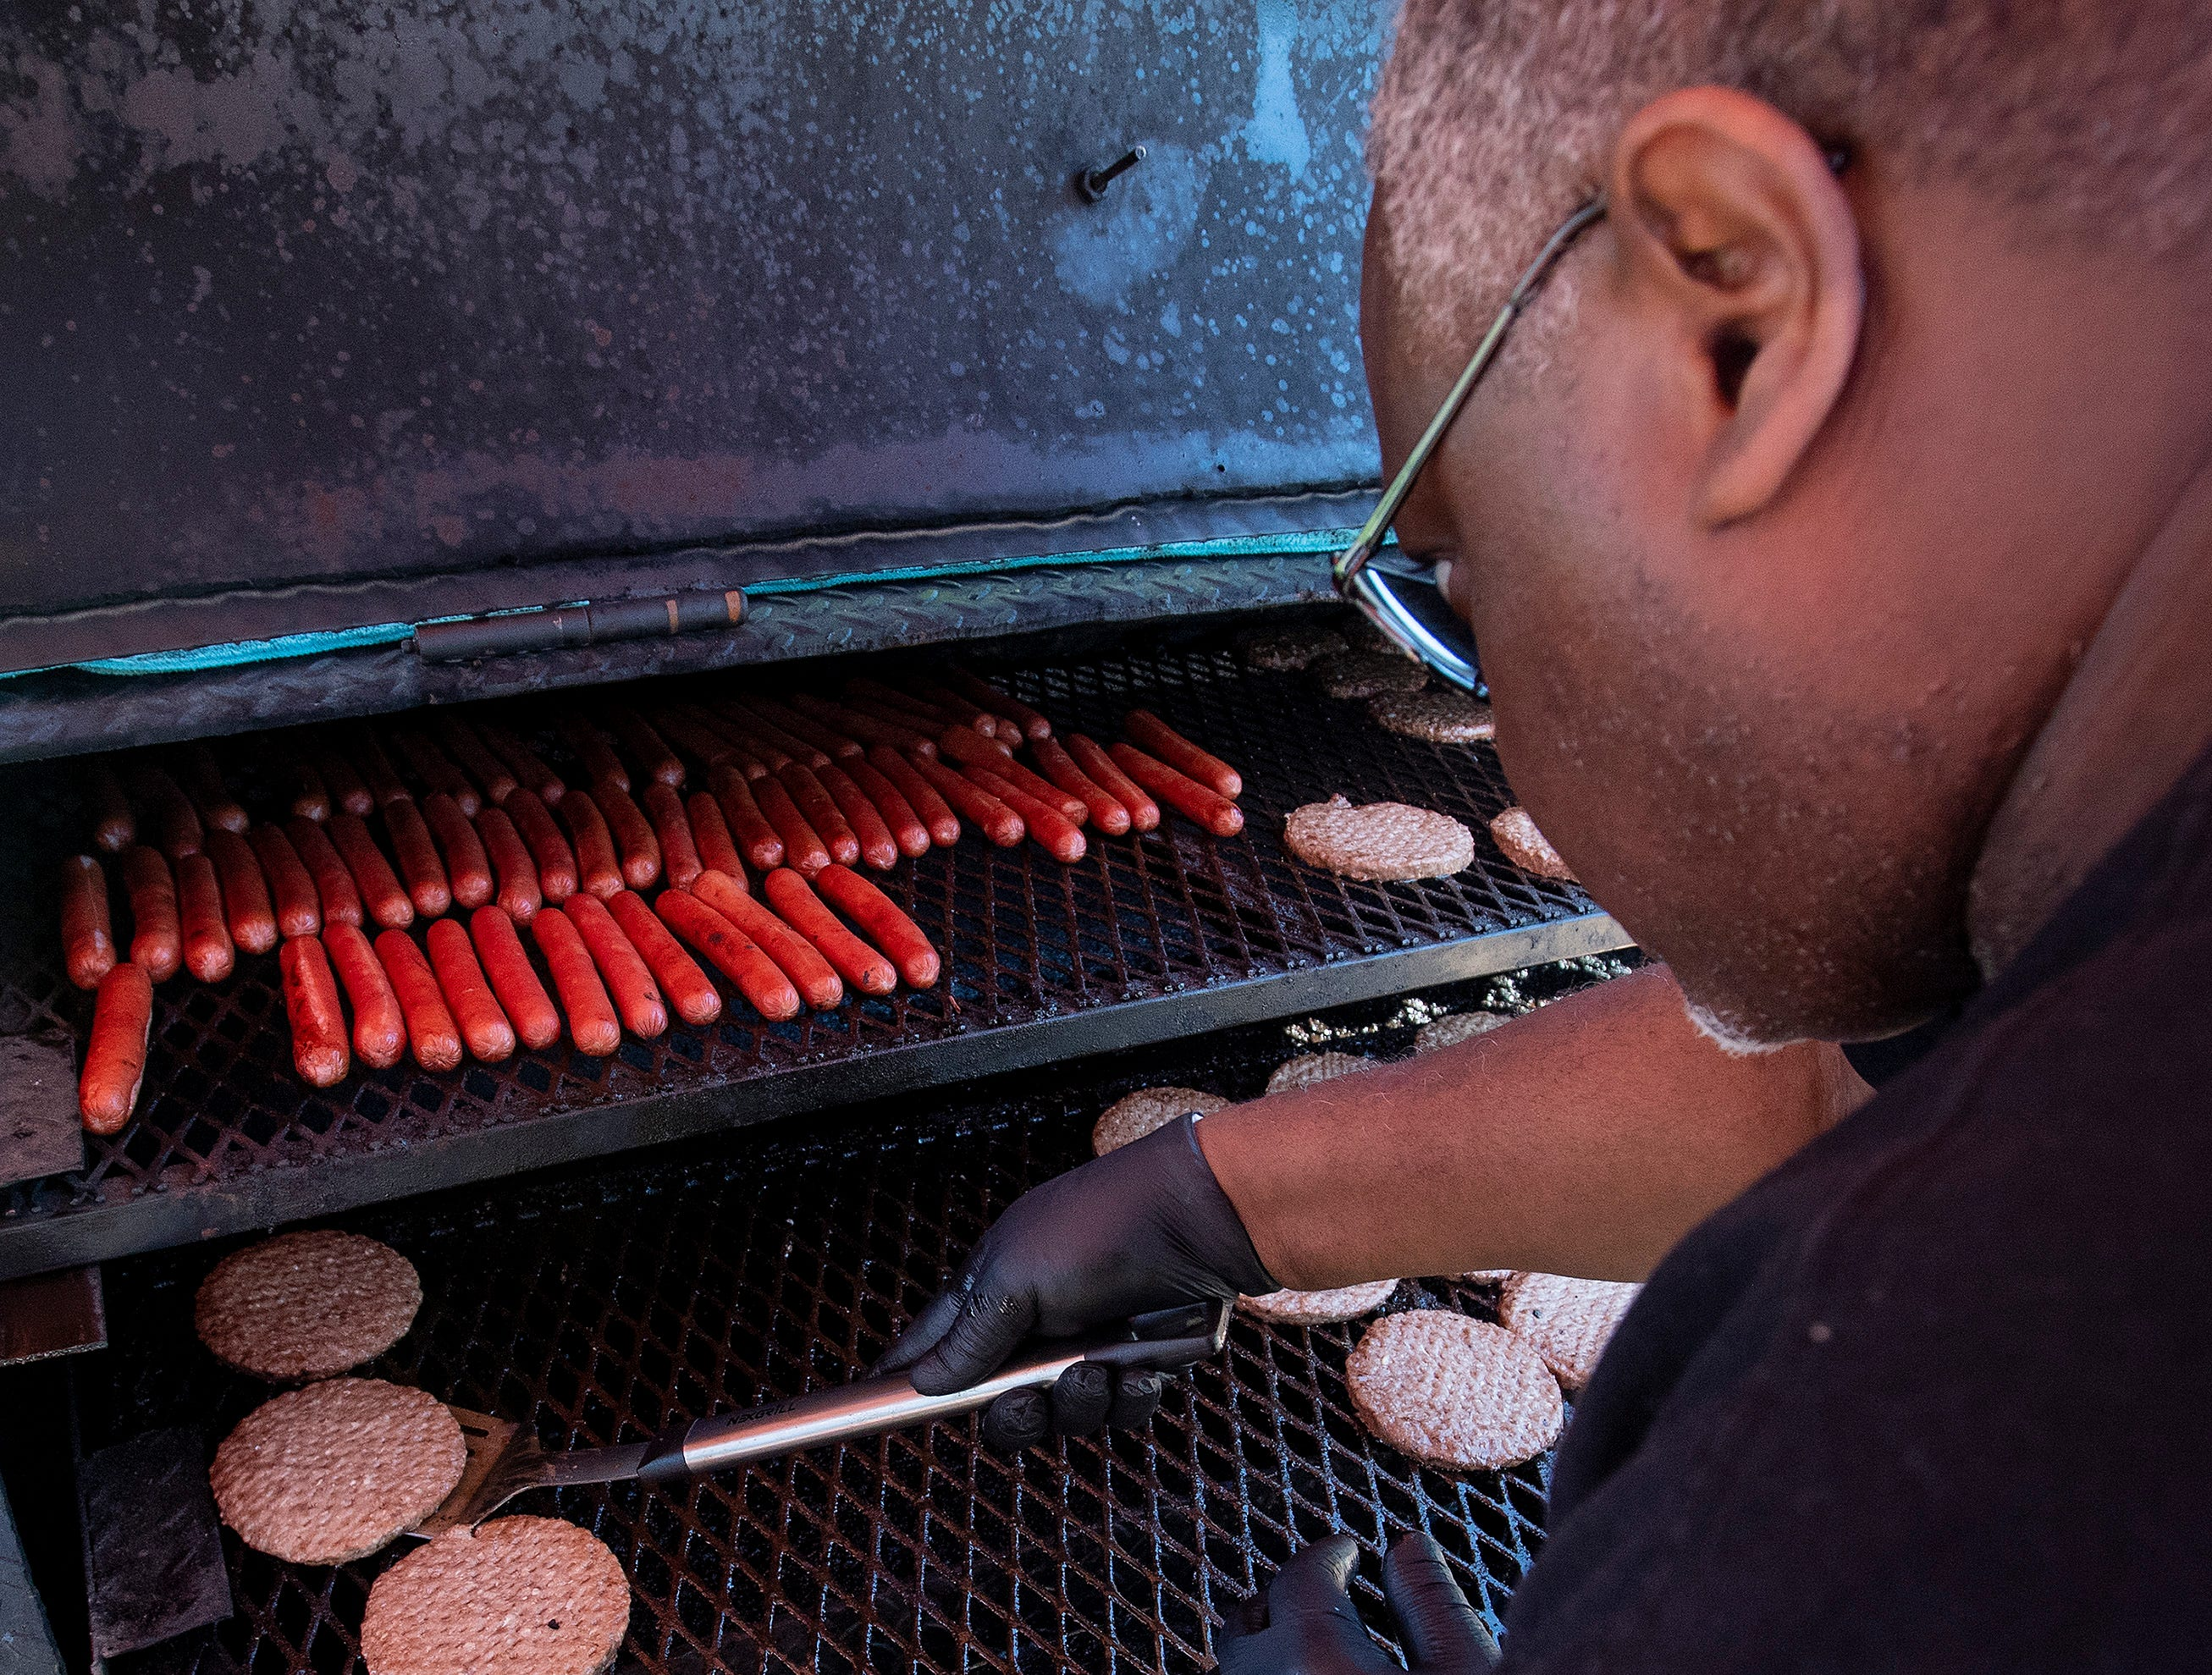 Burgers and hot dogs are prepared as Flatline Church hosts a block party for the Chisholm neighborhood in Montgomery, Ala., on Saturday March 23, 2019.